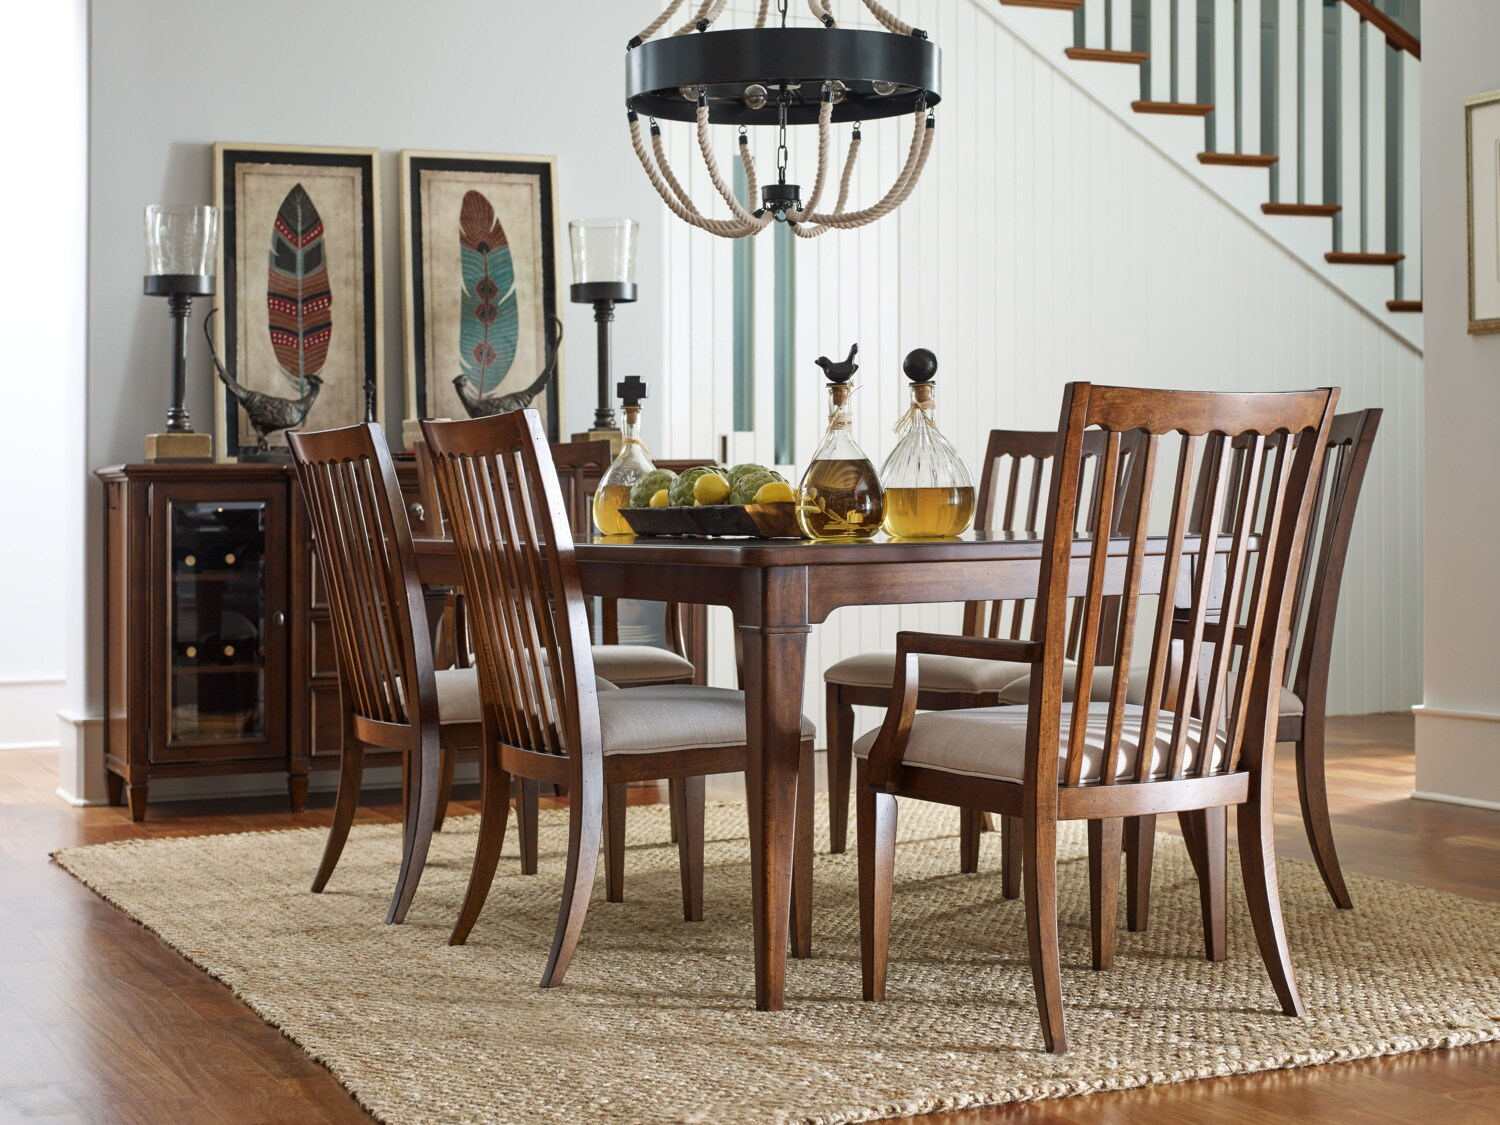 The Rachael Ray Upstate Dining Collection